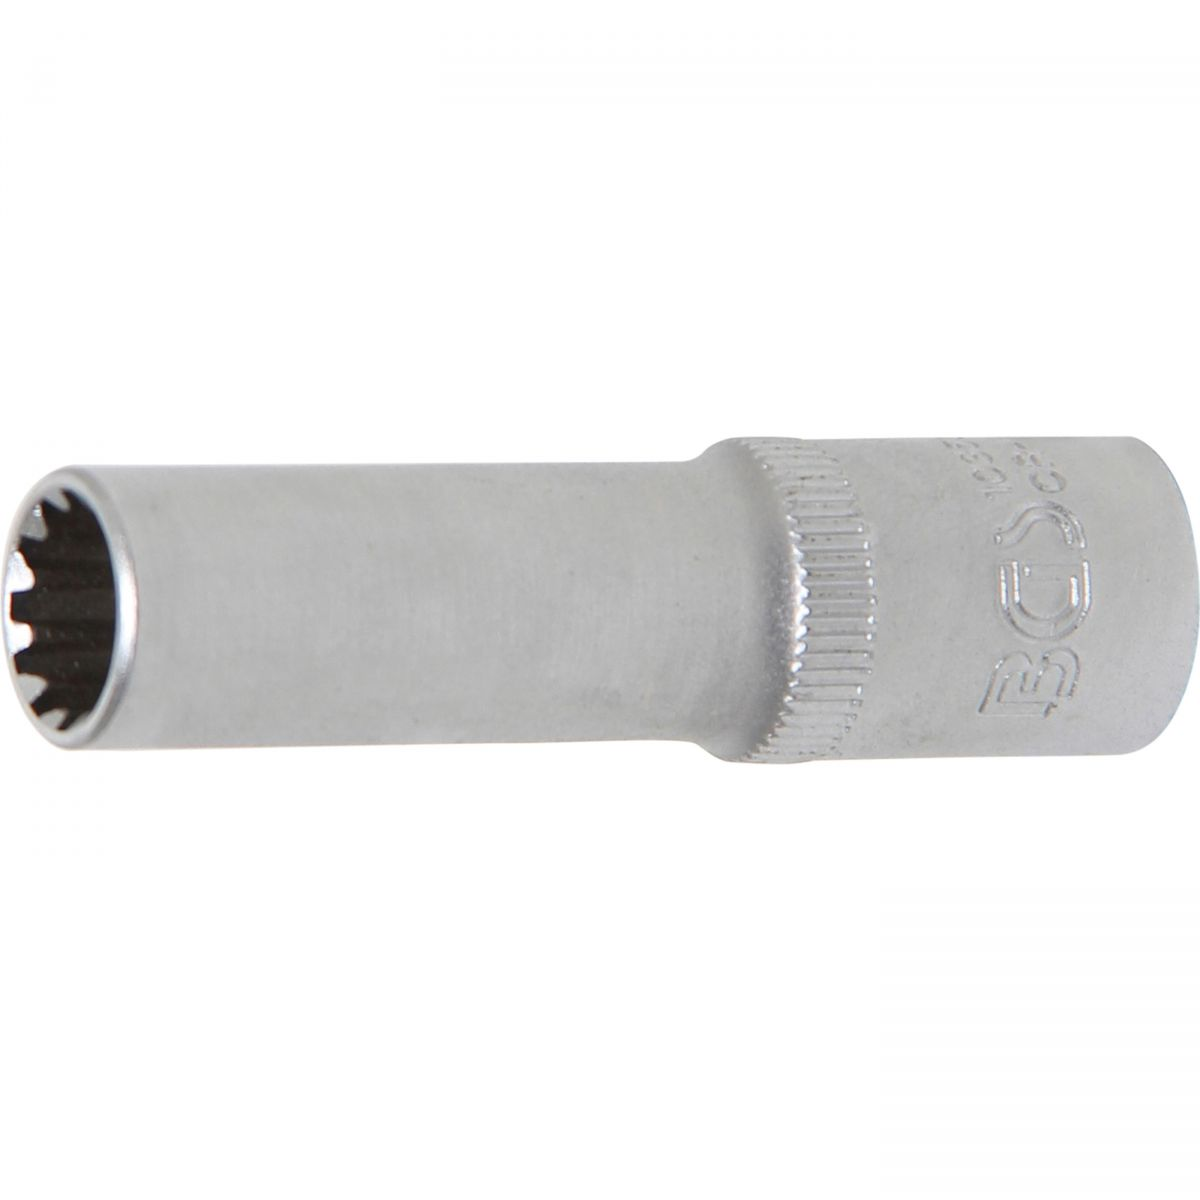 "Socket, Gear Lock, deep | 10 mm (3/8"") drive 